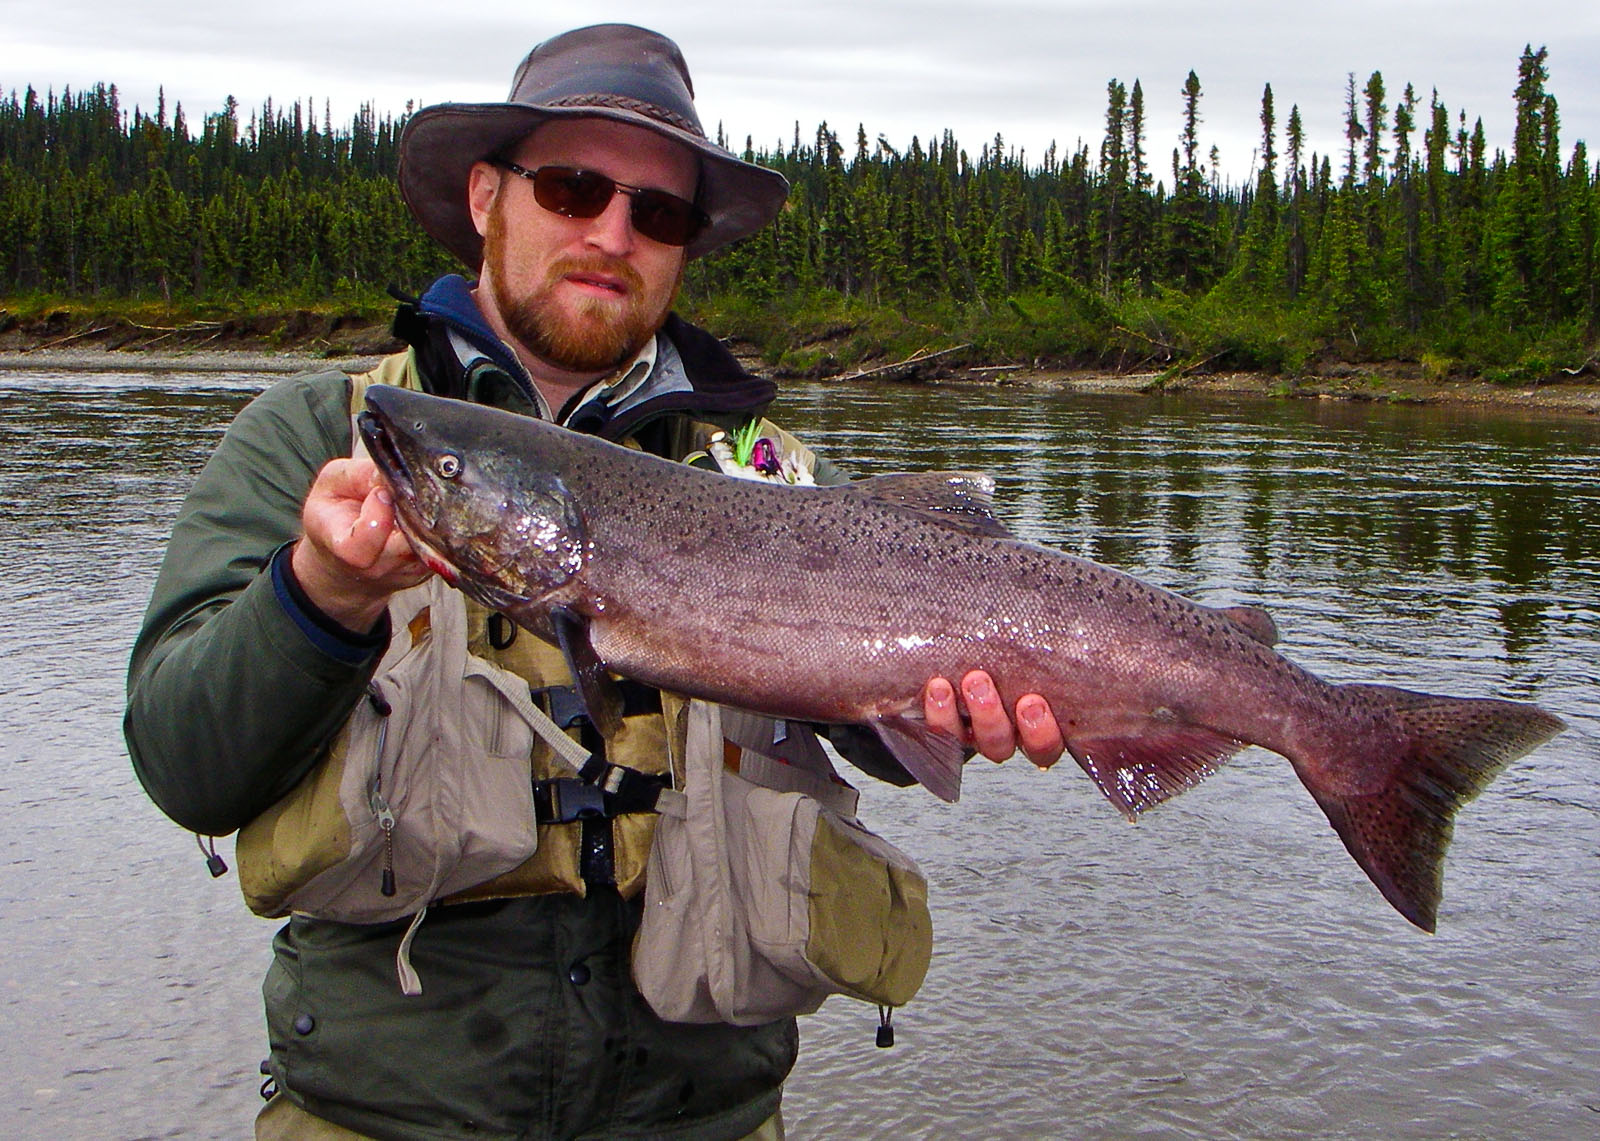 Here's my first Alaskan salmon, a small king that put up a fun fight. From the Gulkana River in Alaska.